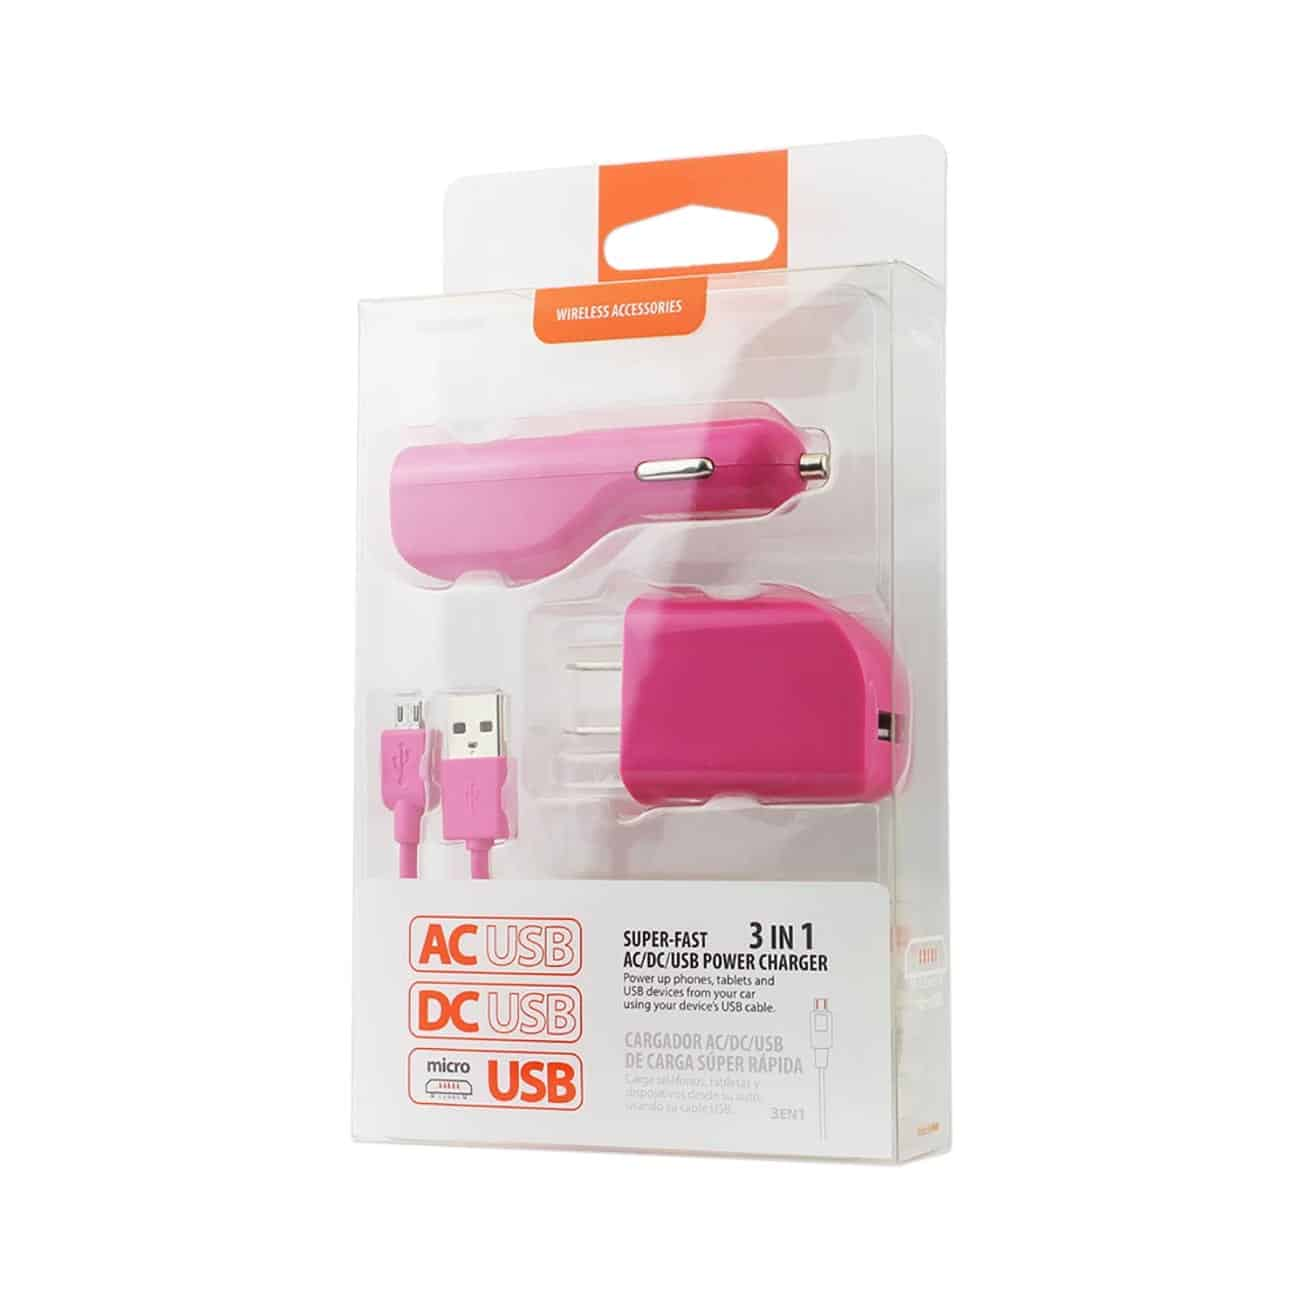 MICRO 1 AMP 3-IN-1 CAR CHARGER WALL ADAPTER WITH USB CABLE IN HOT PINK